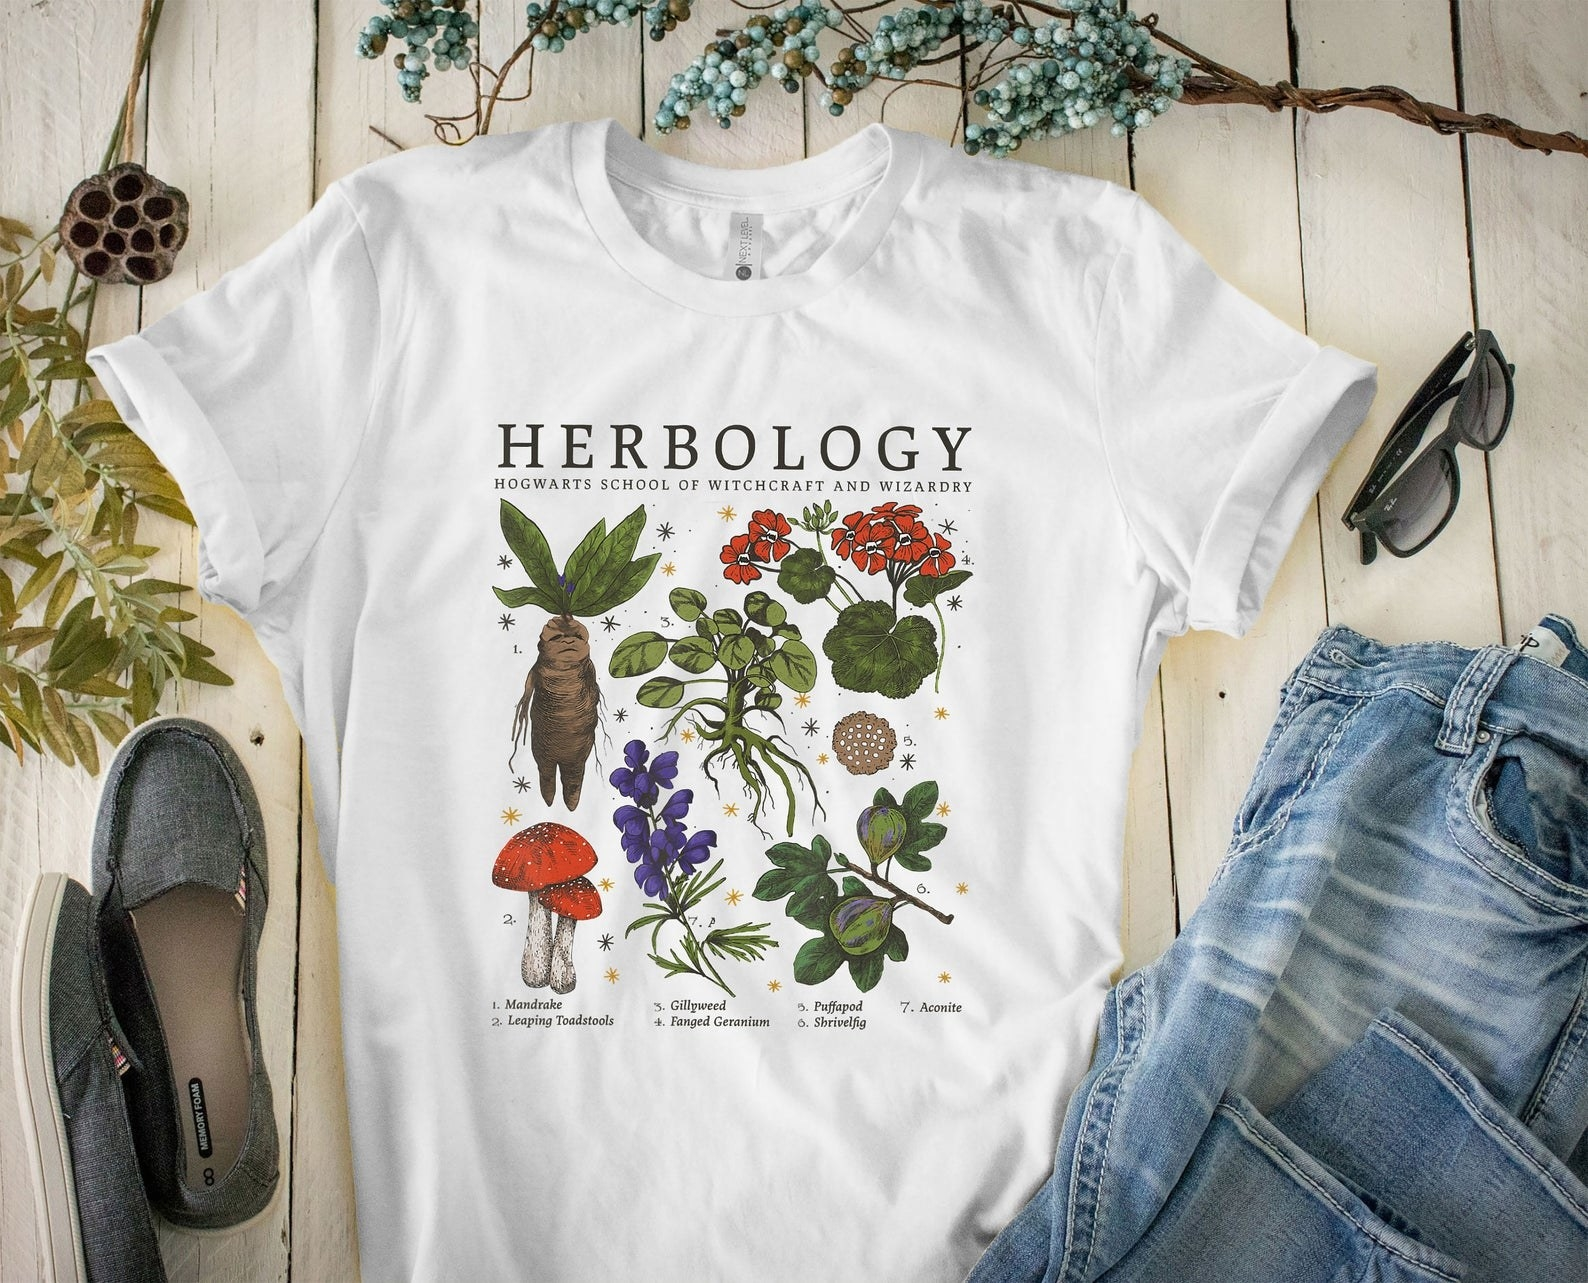 the white tee with Herbology printed on it